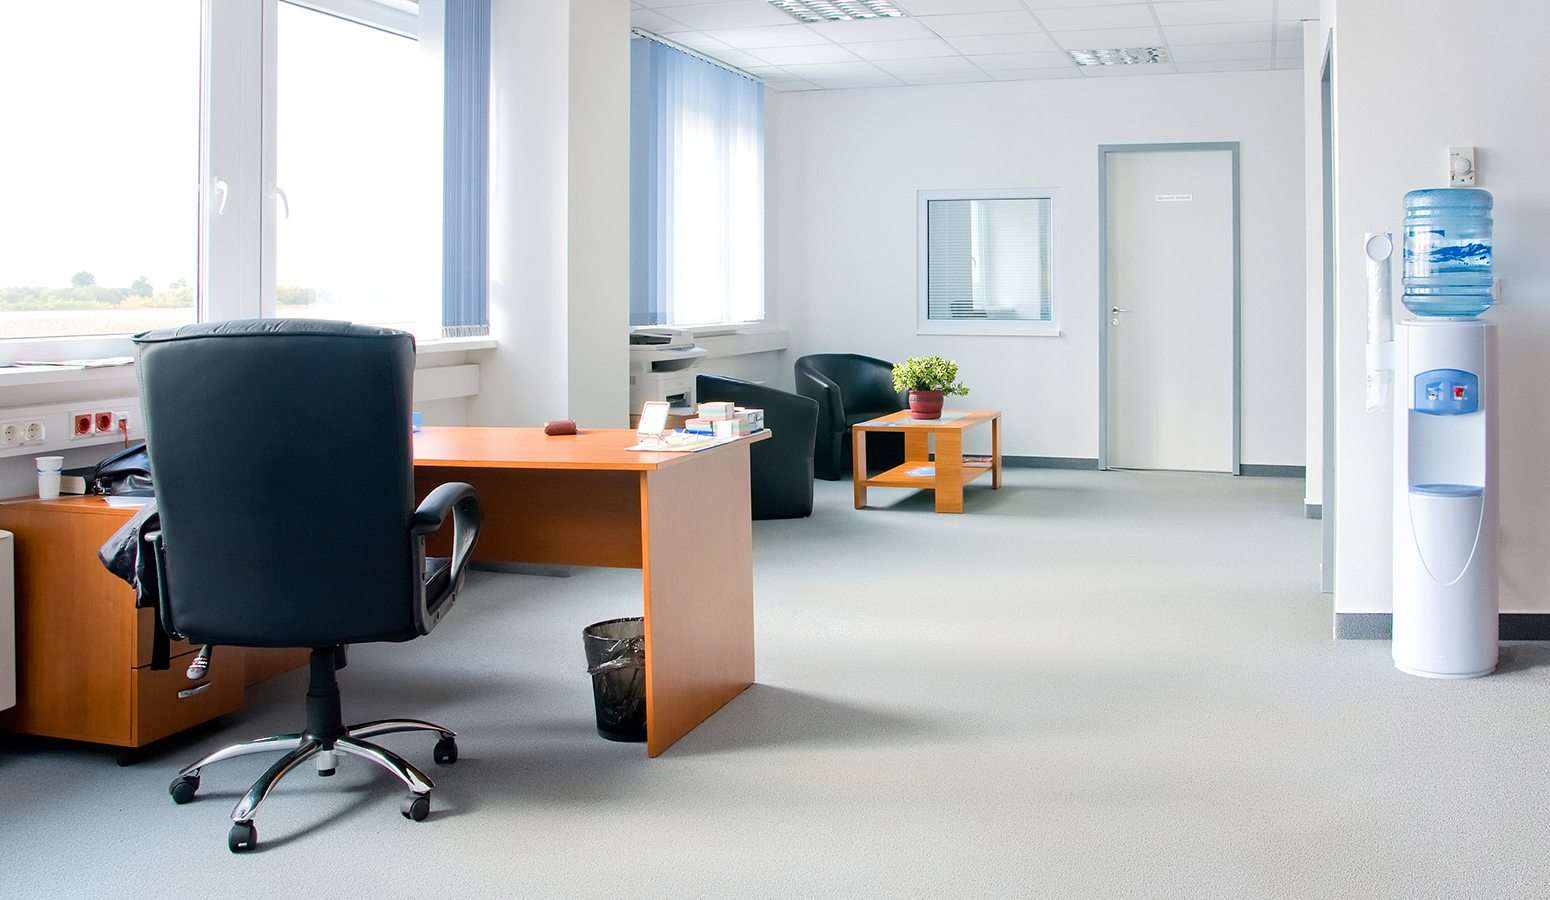 ... customized to your business operation, give us a call and get your business a cleaner, safer, healthier environment for your customers and employees.